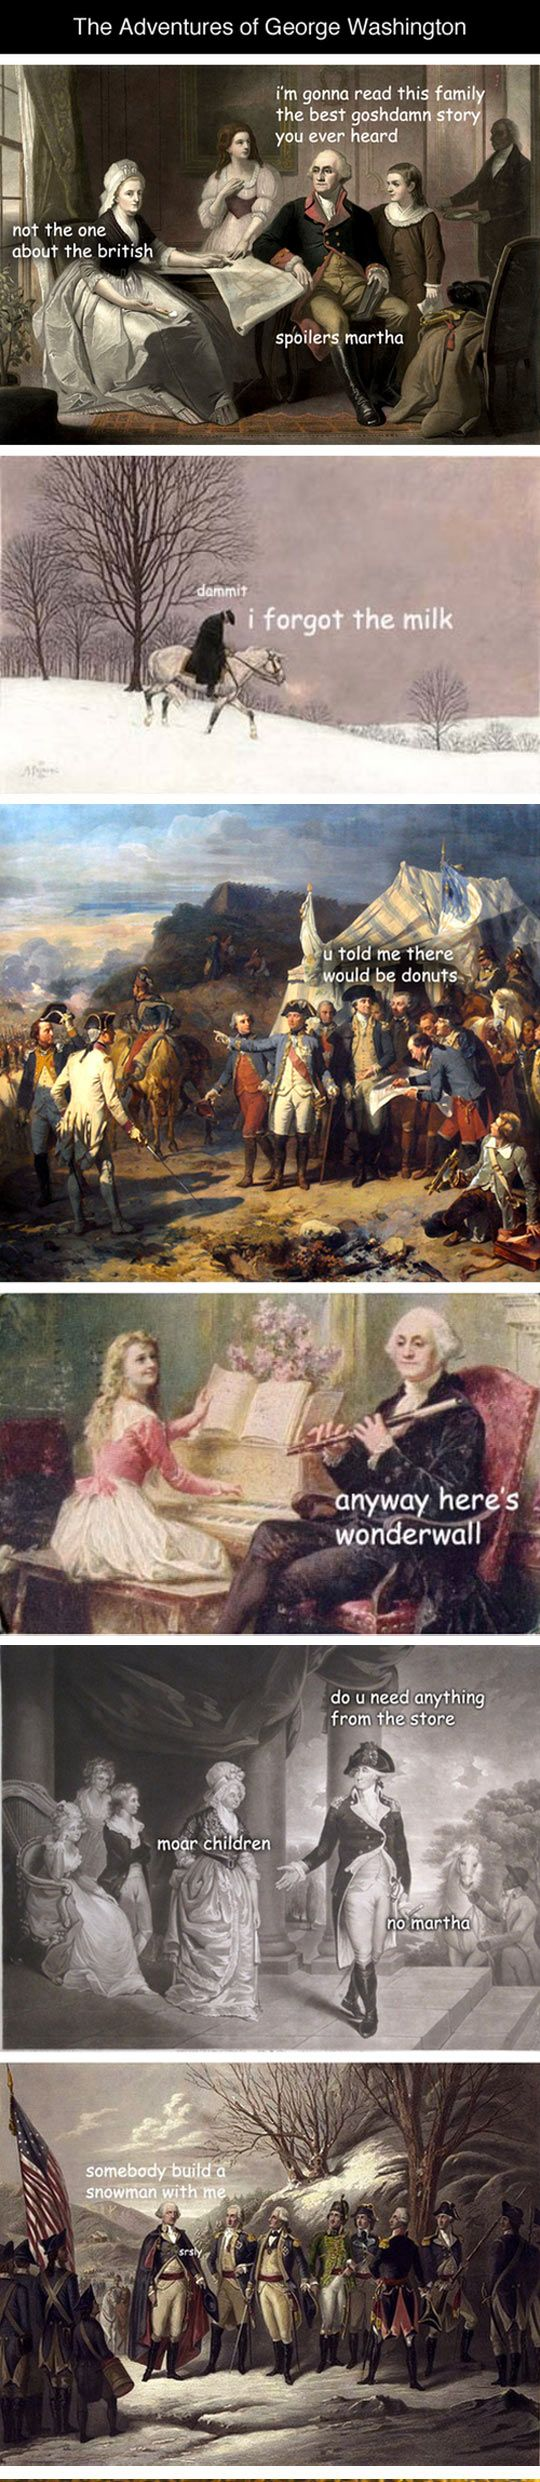 best 25 pictures of george washington ideas on pinterest george